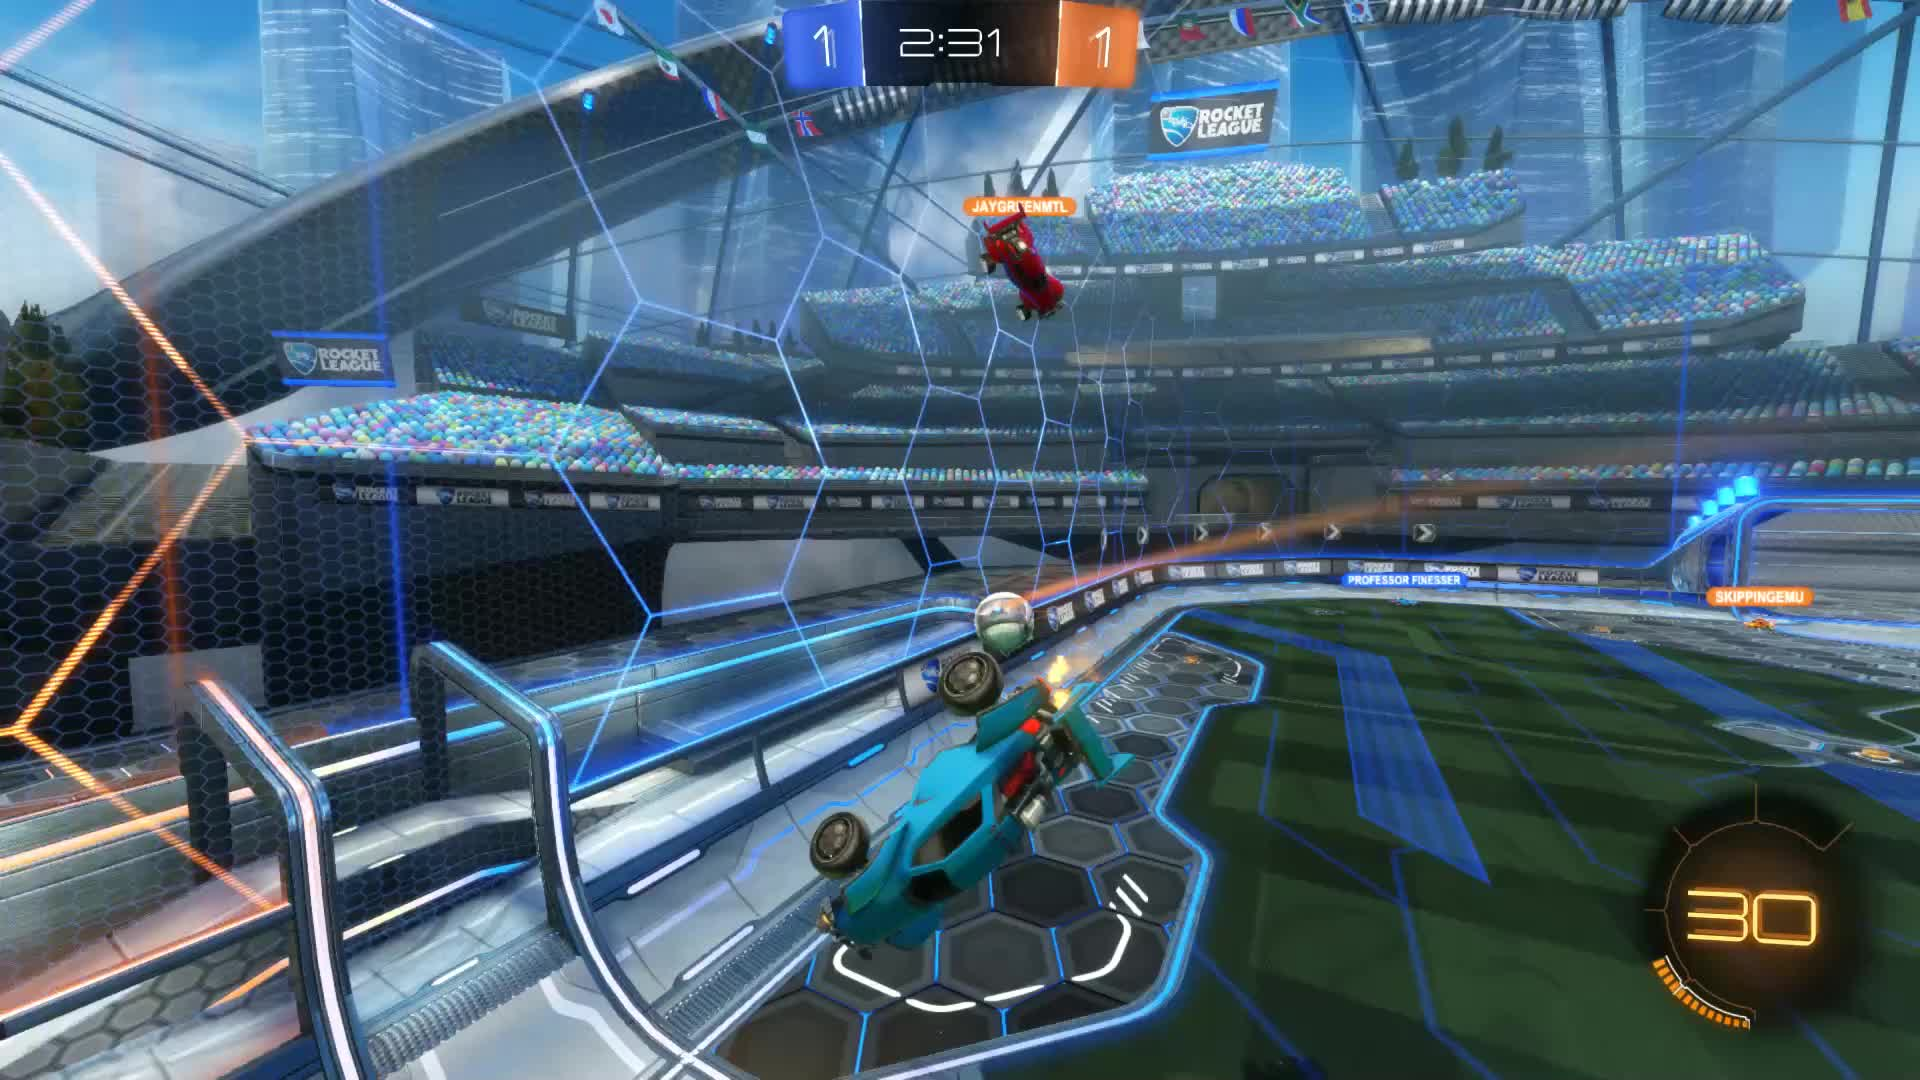 Gif Your Game, GifYourGame, Goal, Nyhx, Rocket League, RocketLeague, Goal 3: Nyhx GIFs